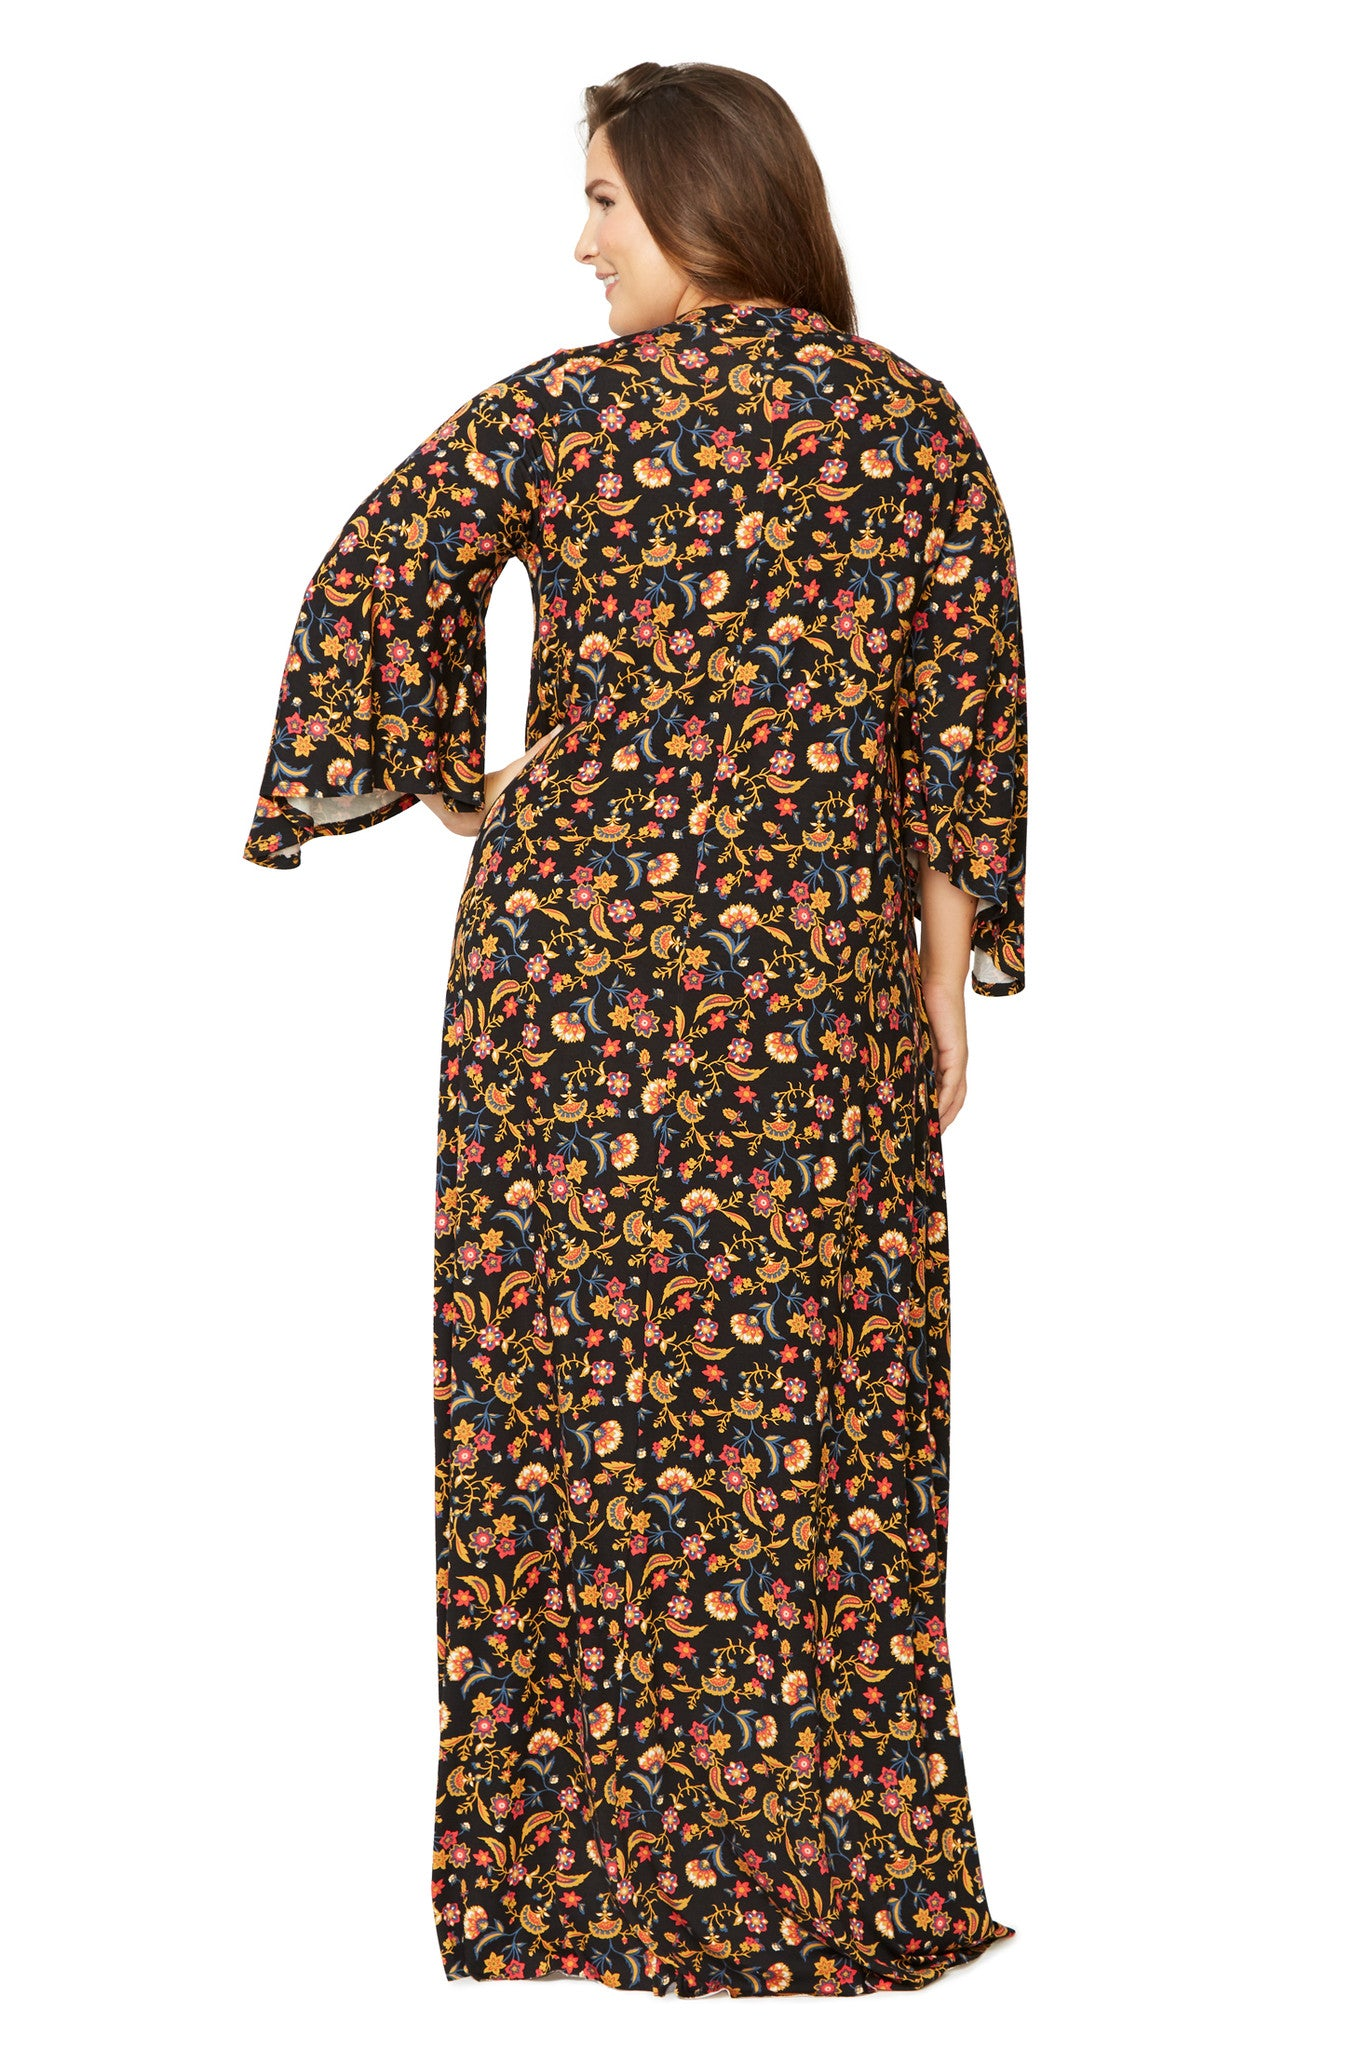 Rosaleen Dress Print - Folklore